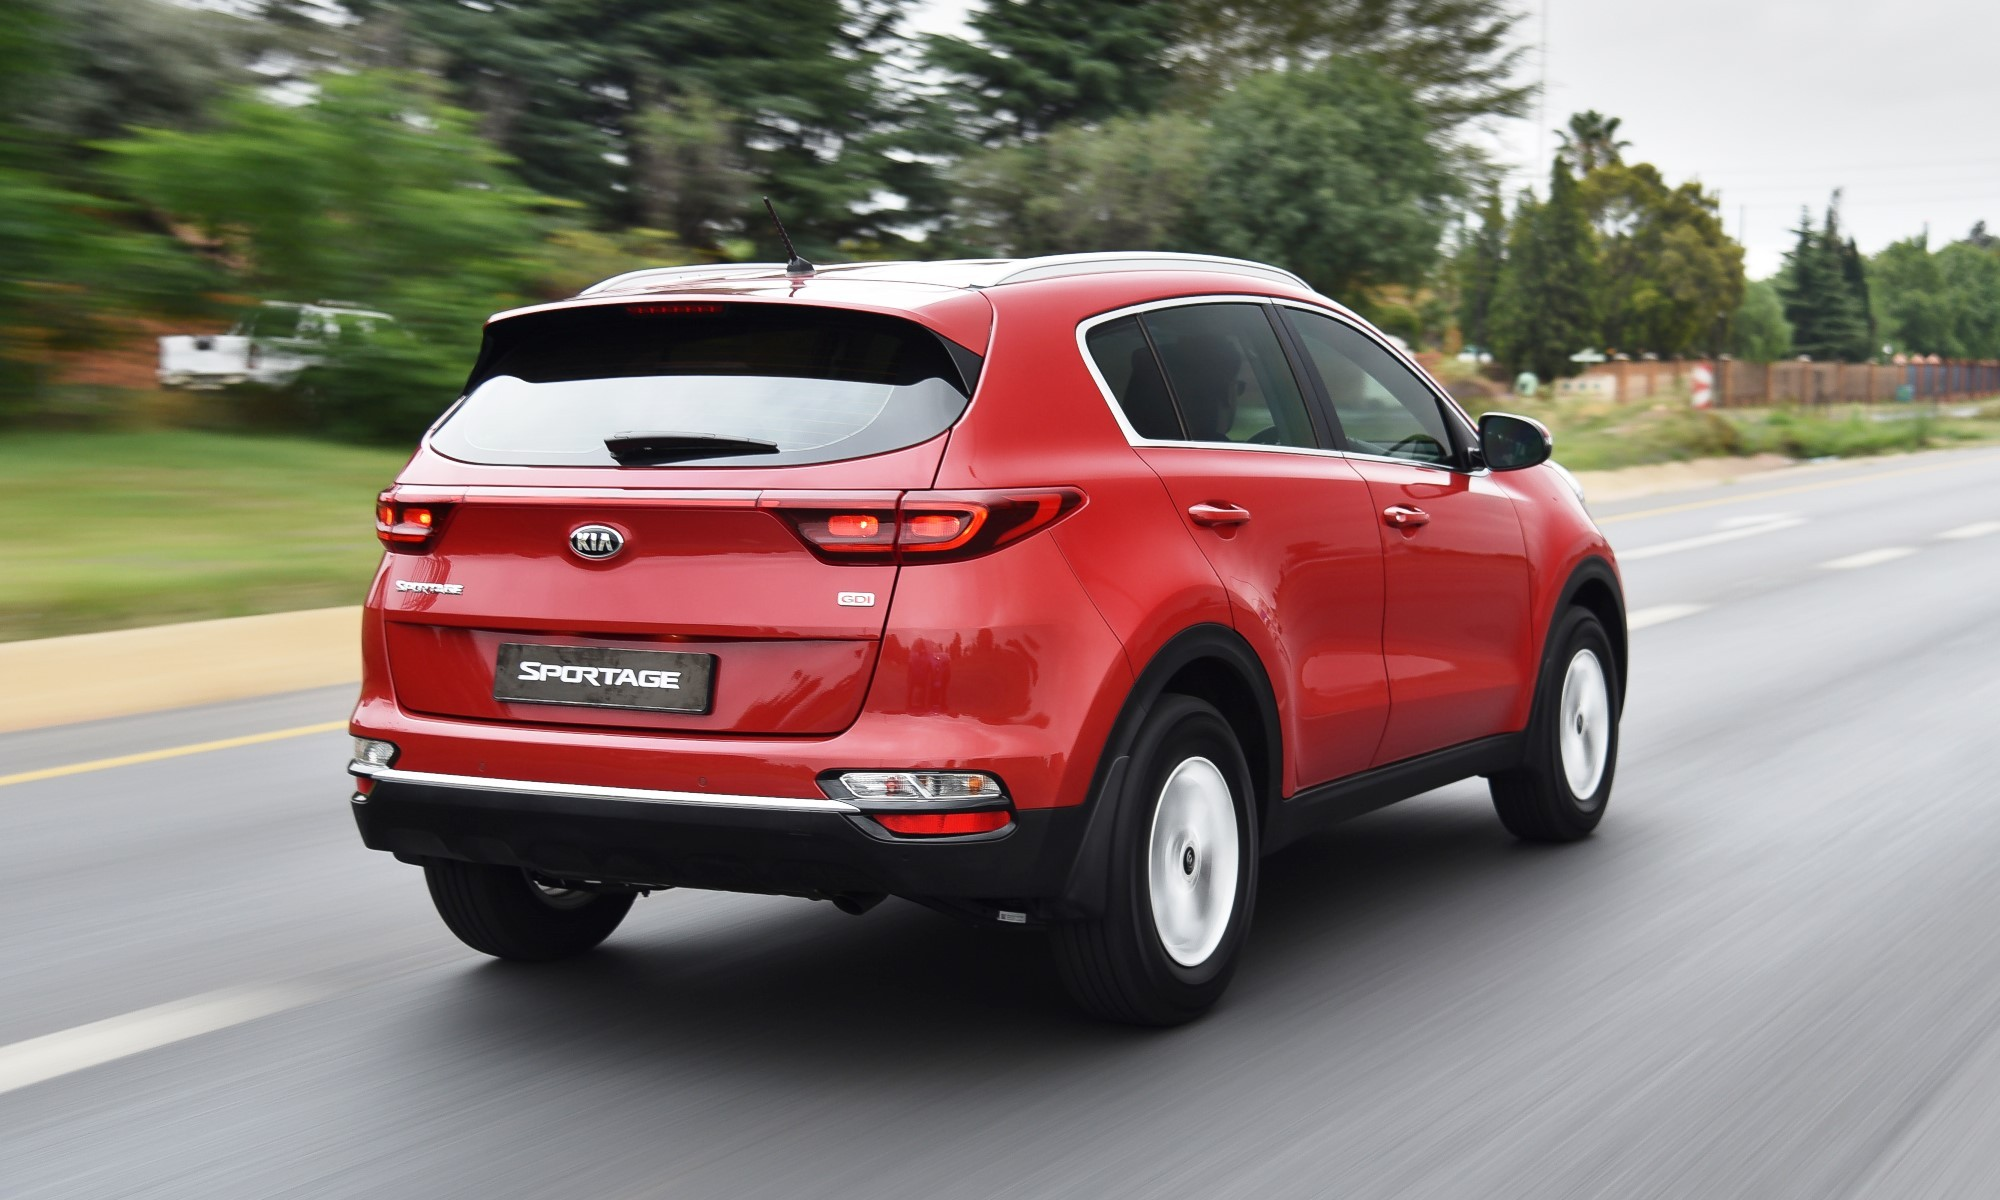 KIA Sportage 1,6 GDI Ignite rear